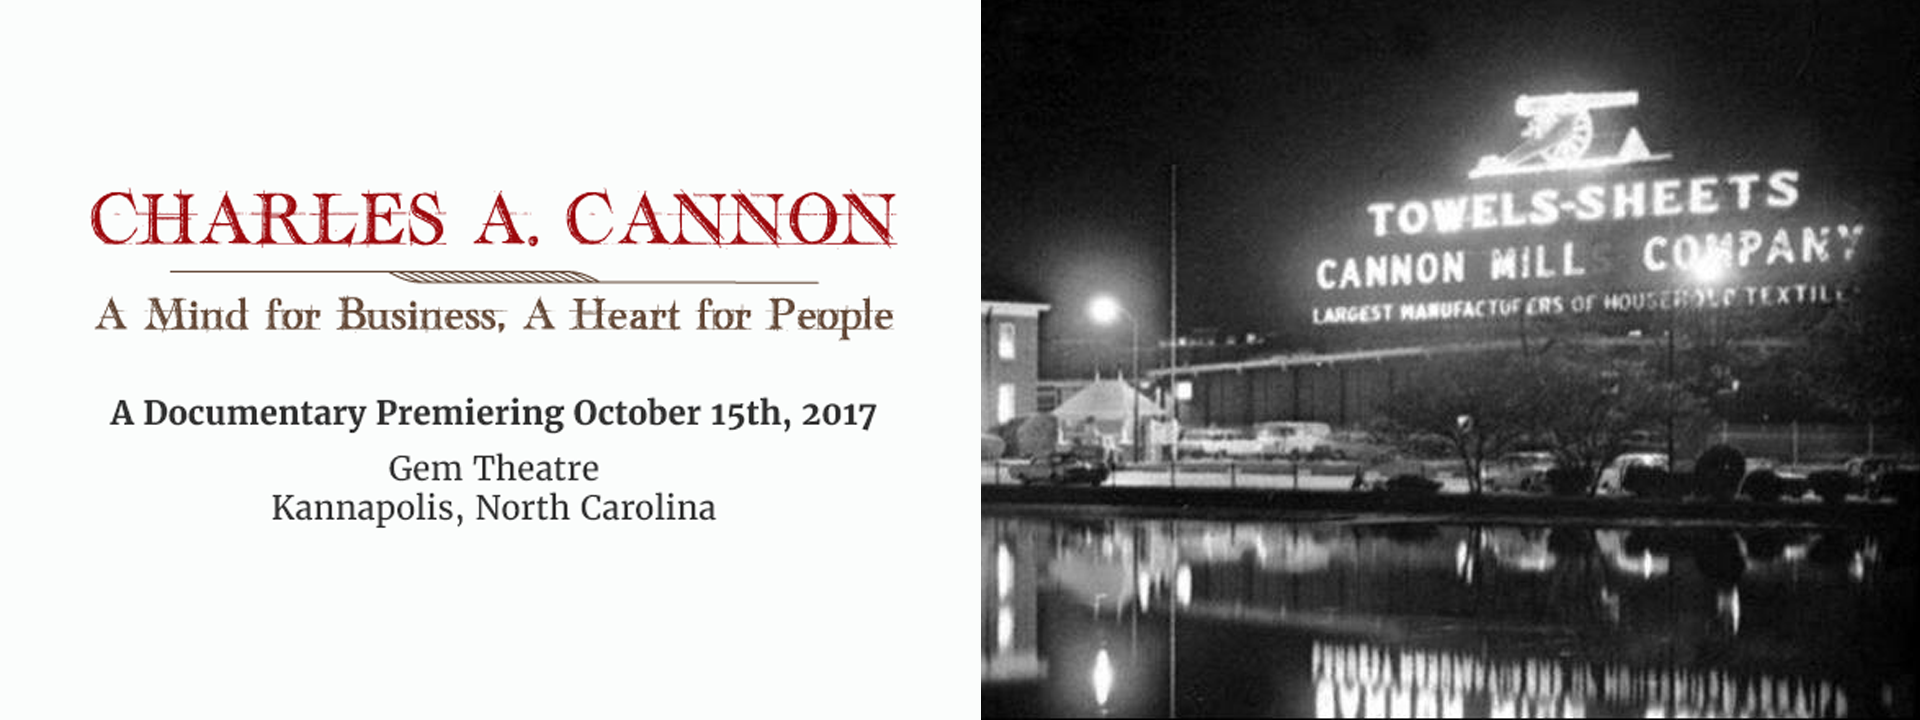 Charles A. Cannon: A Mind for Business, A Heart for People